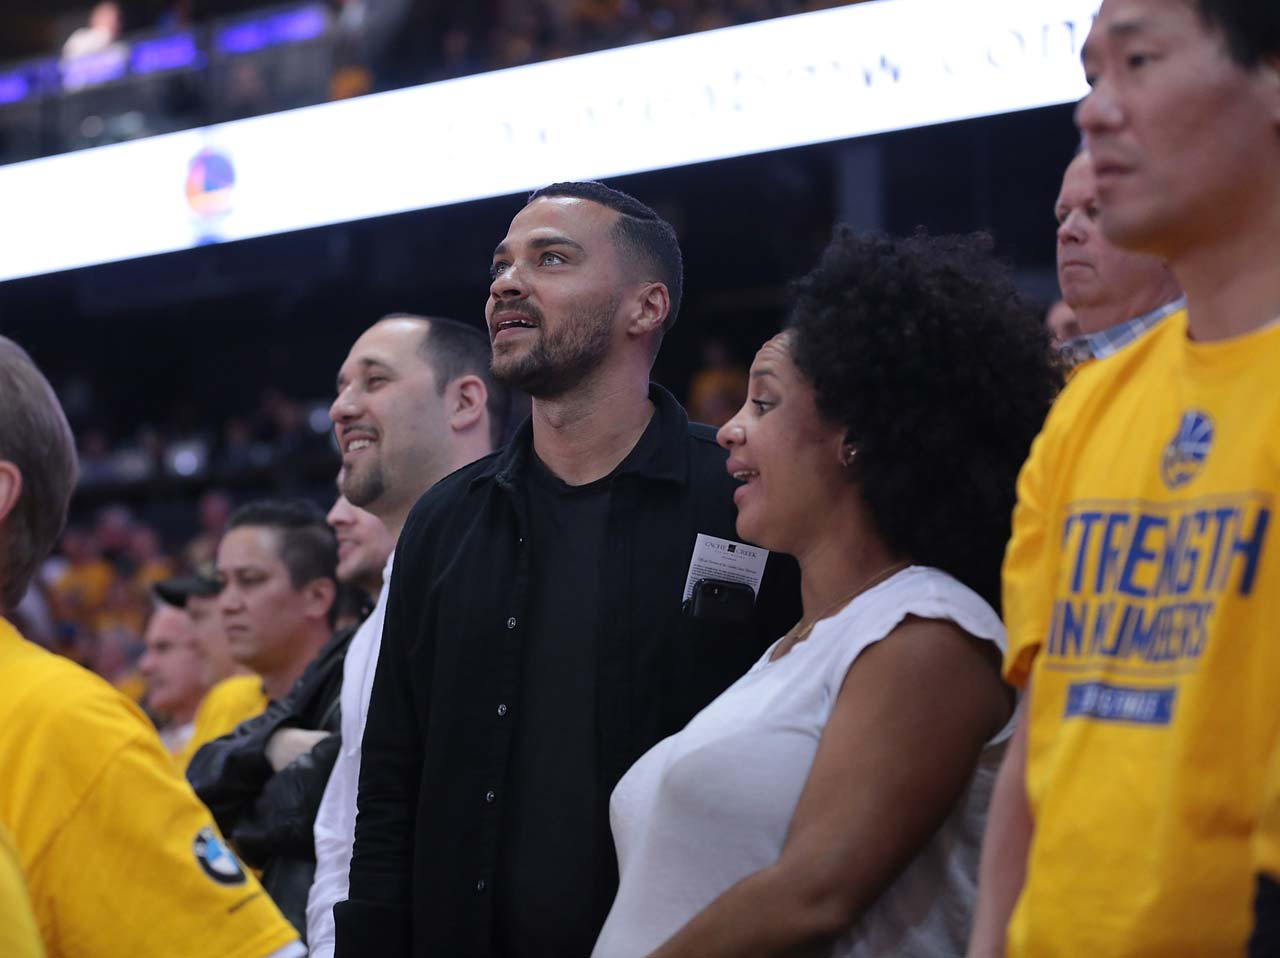 Actor Jesse Williams takes in Game 2 of the NBA Finals.